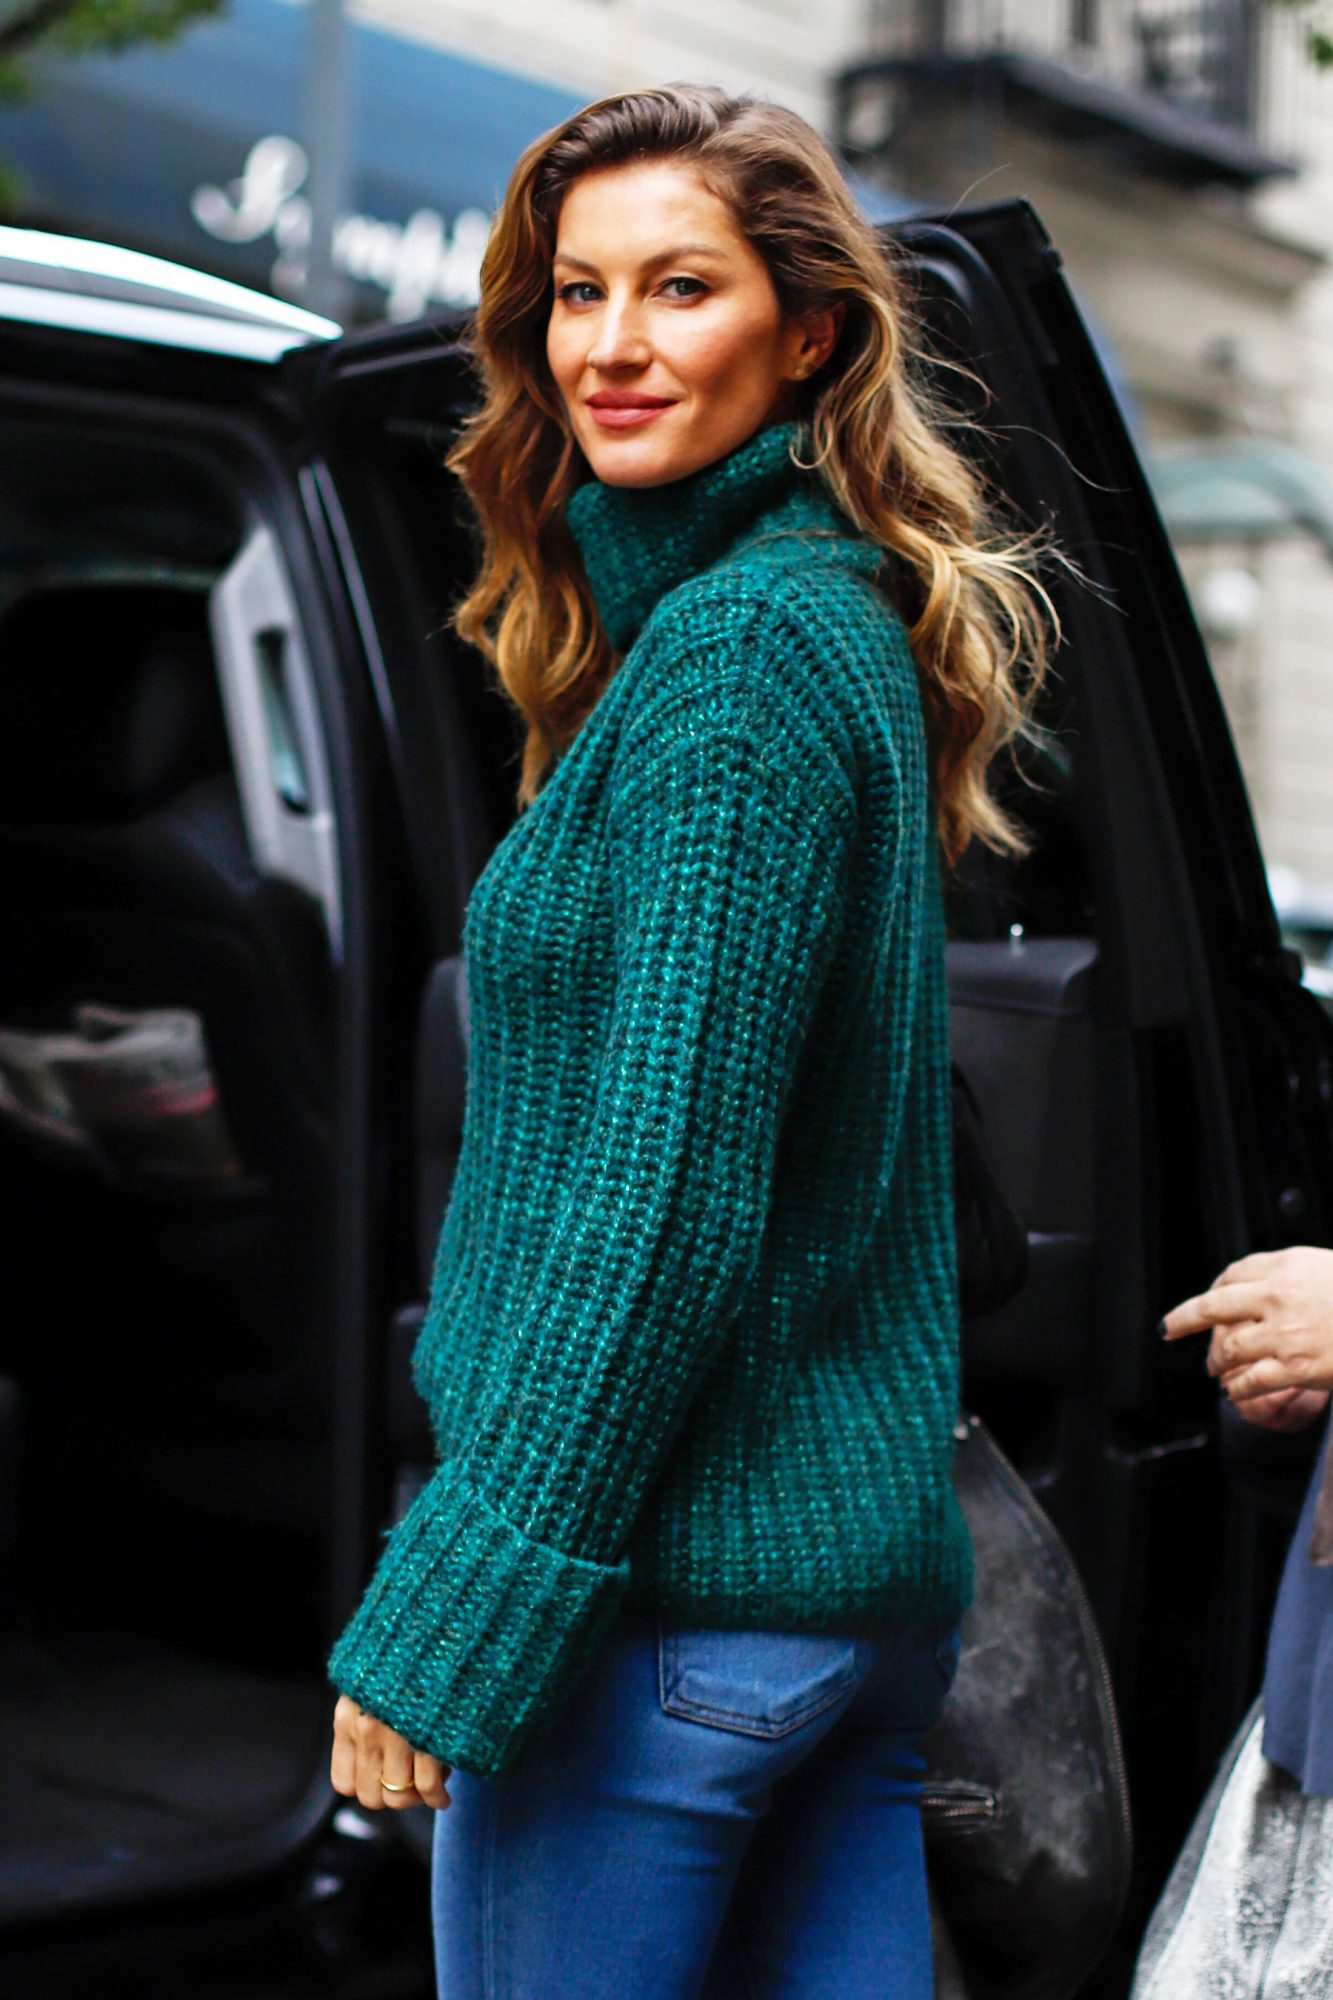 Gisele Bundchen out and about, New York, USA - 22 Oct 2018